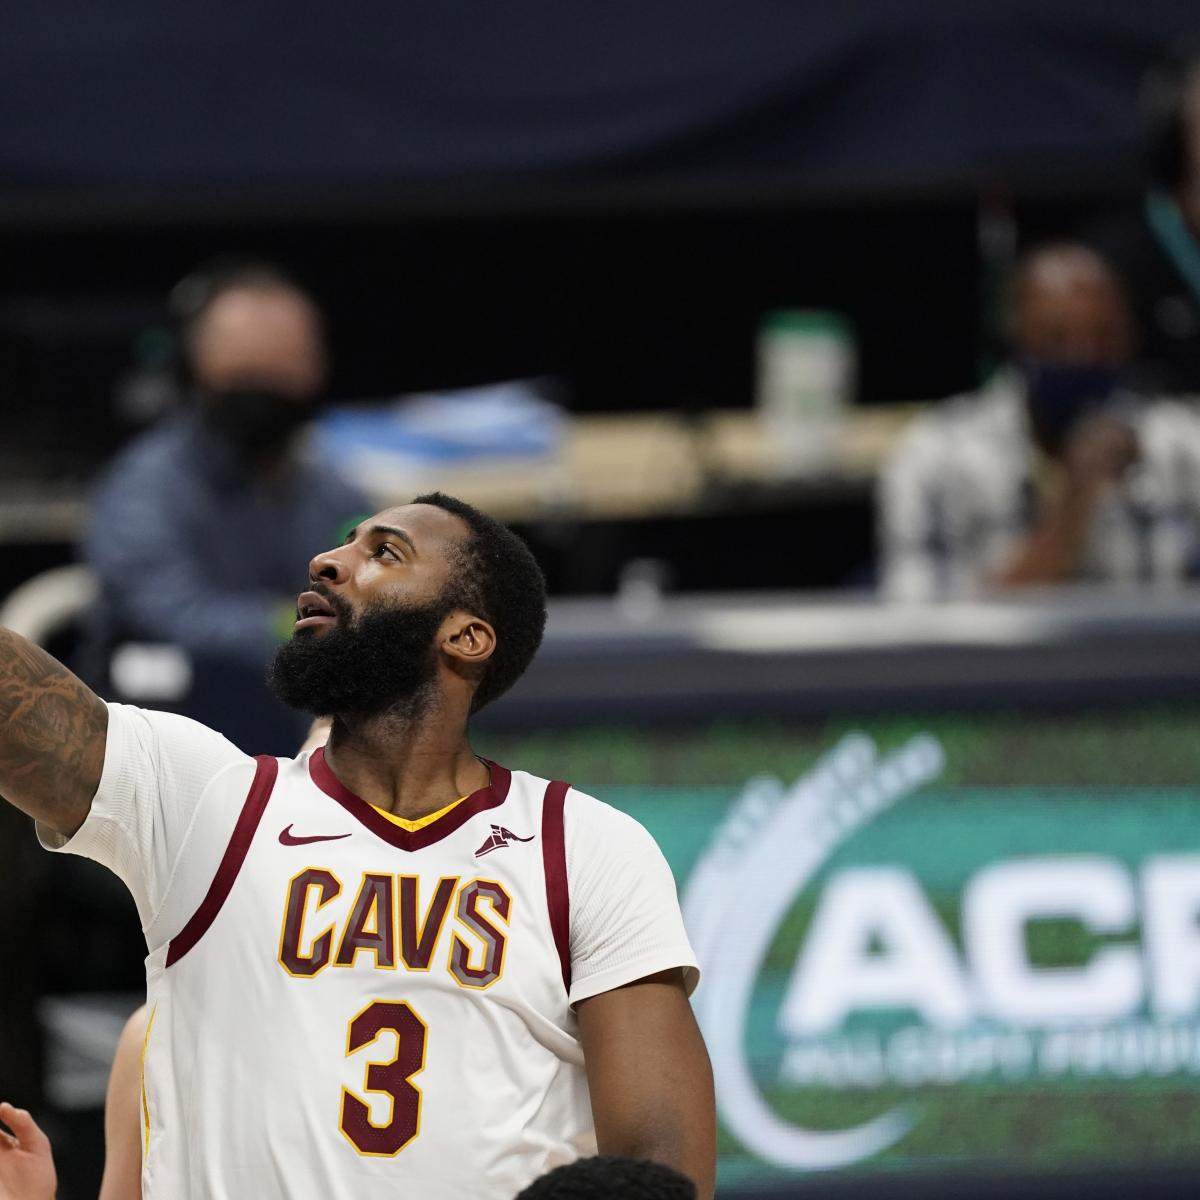 Woj: Celtics Have 'Real Shot' to Sign Andre Drummond After Cavs Contract Buyout - Bleacher Report